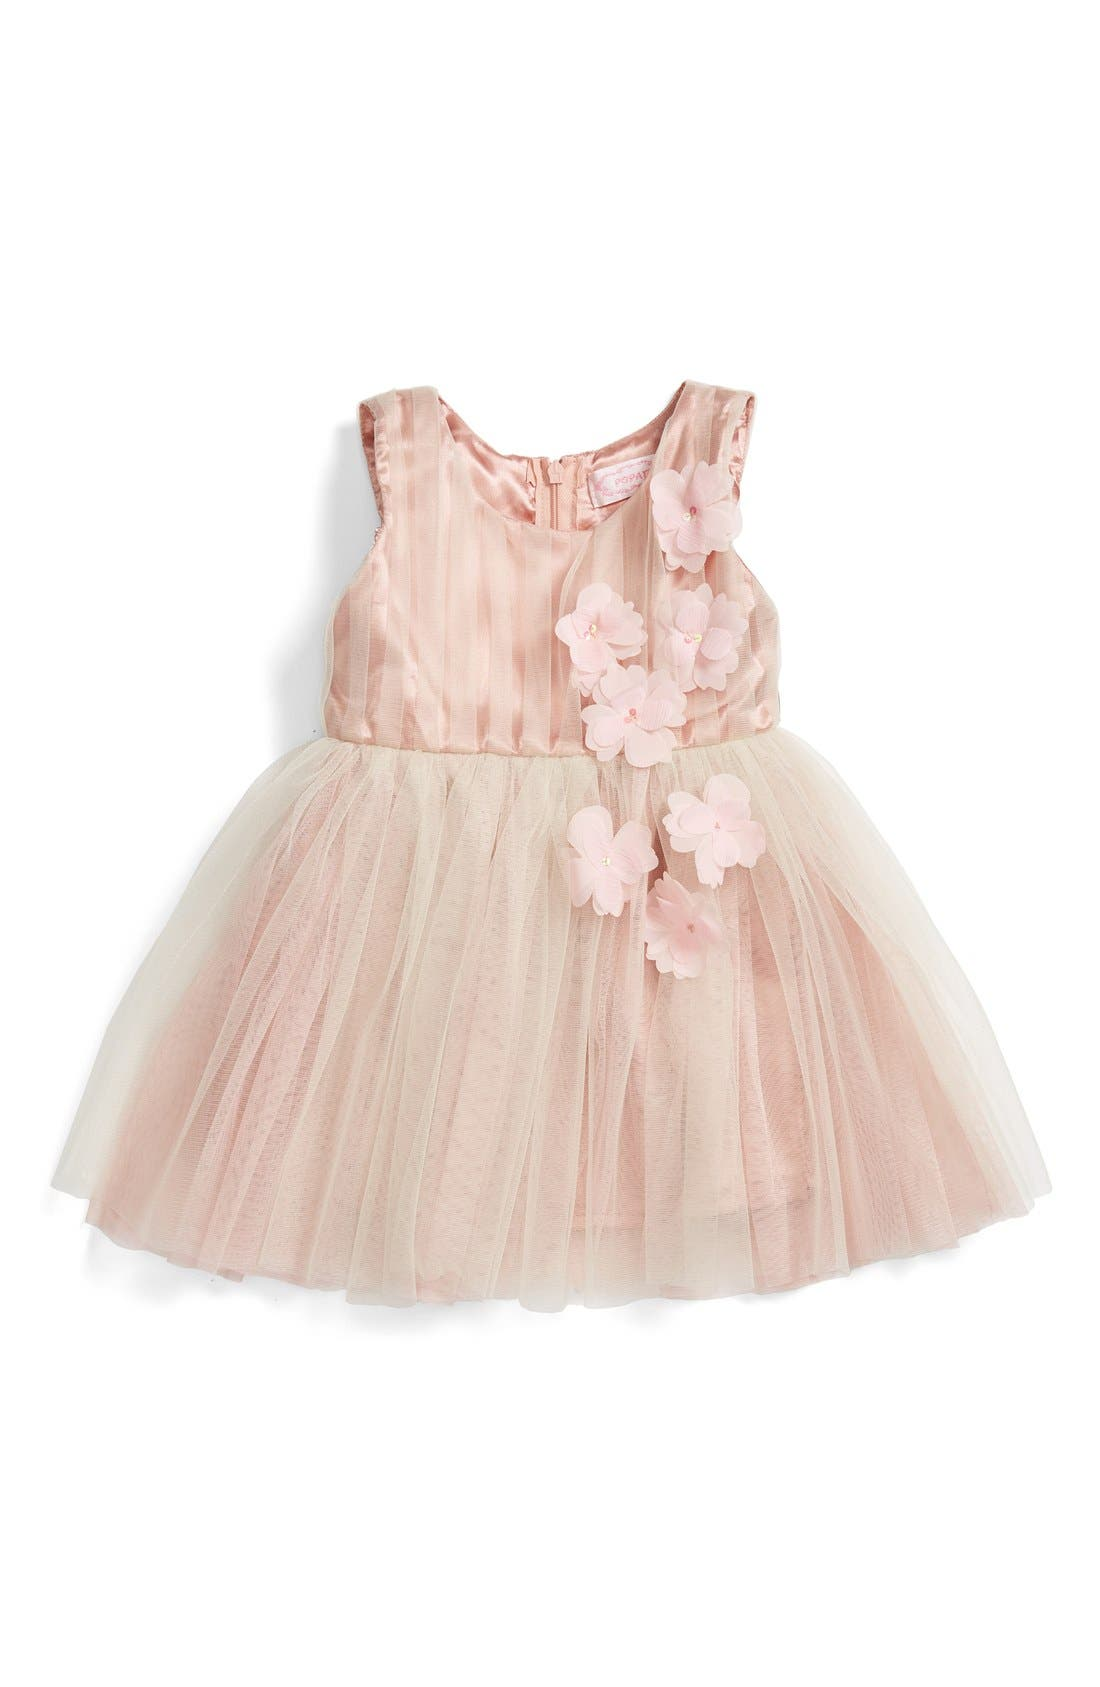 a84a315b5001f Flower Girl Dresses & Accessories | Nordstrom